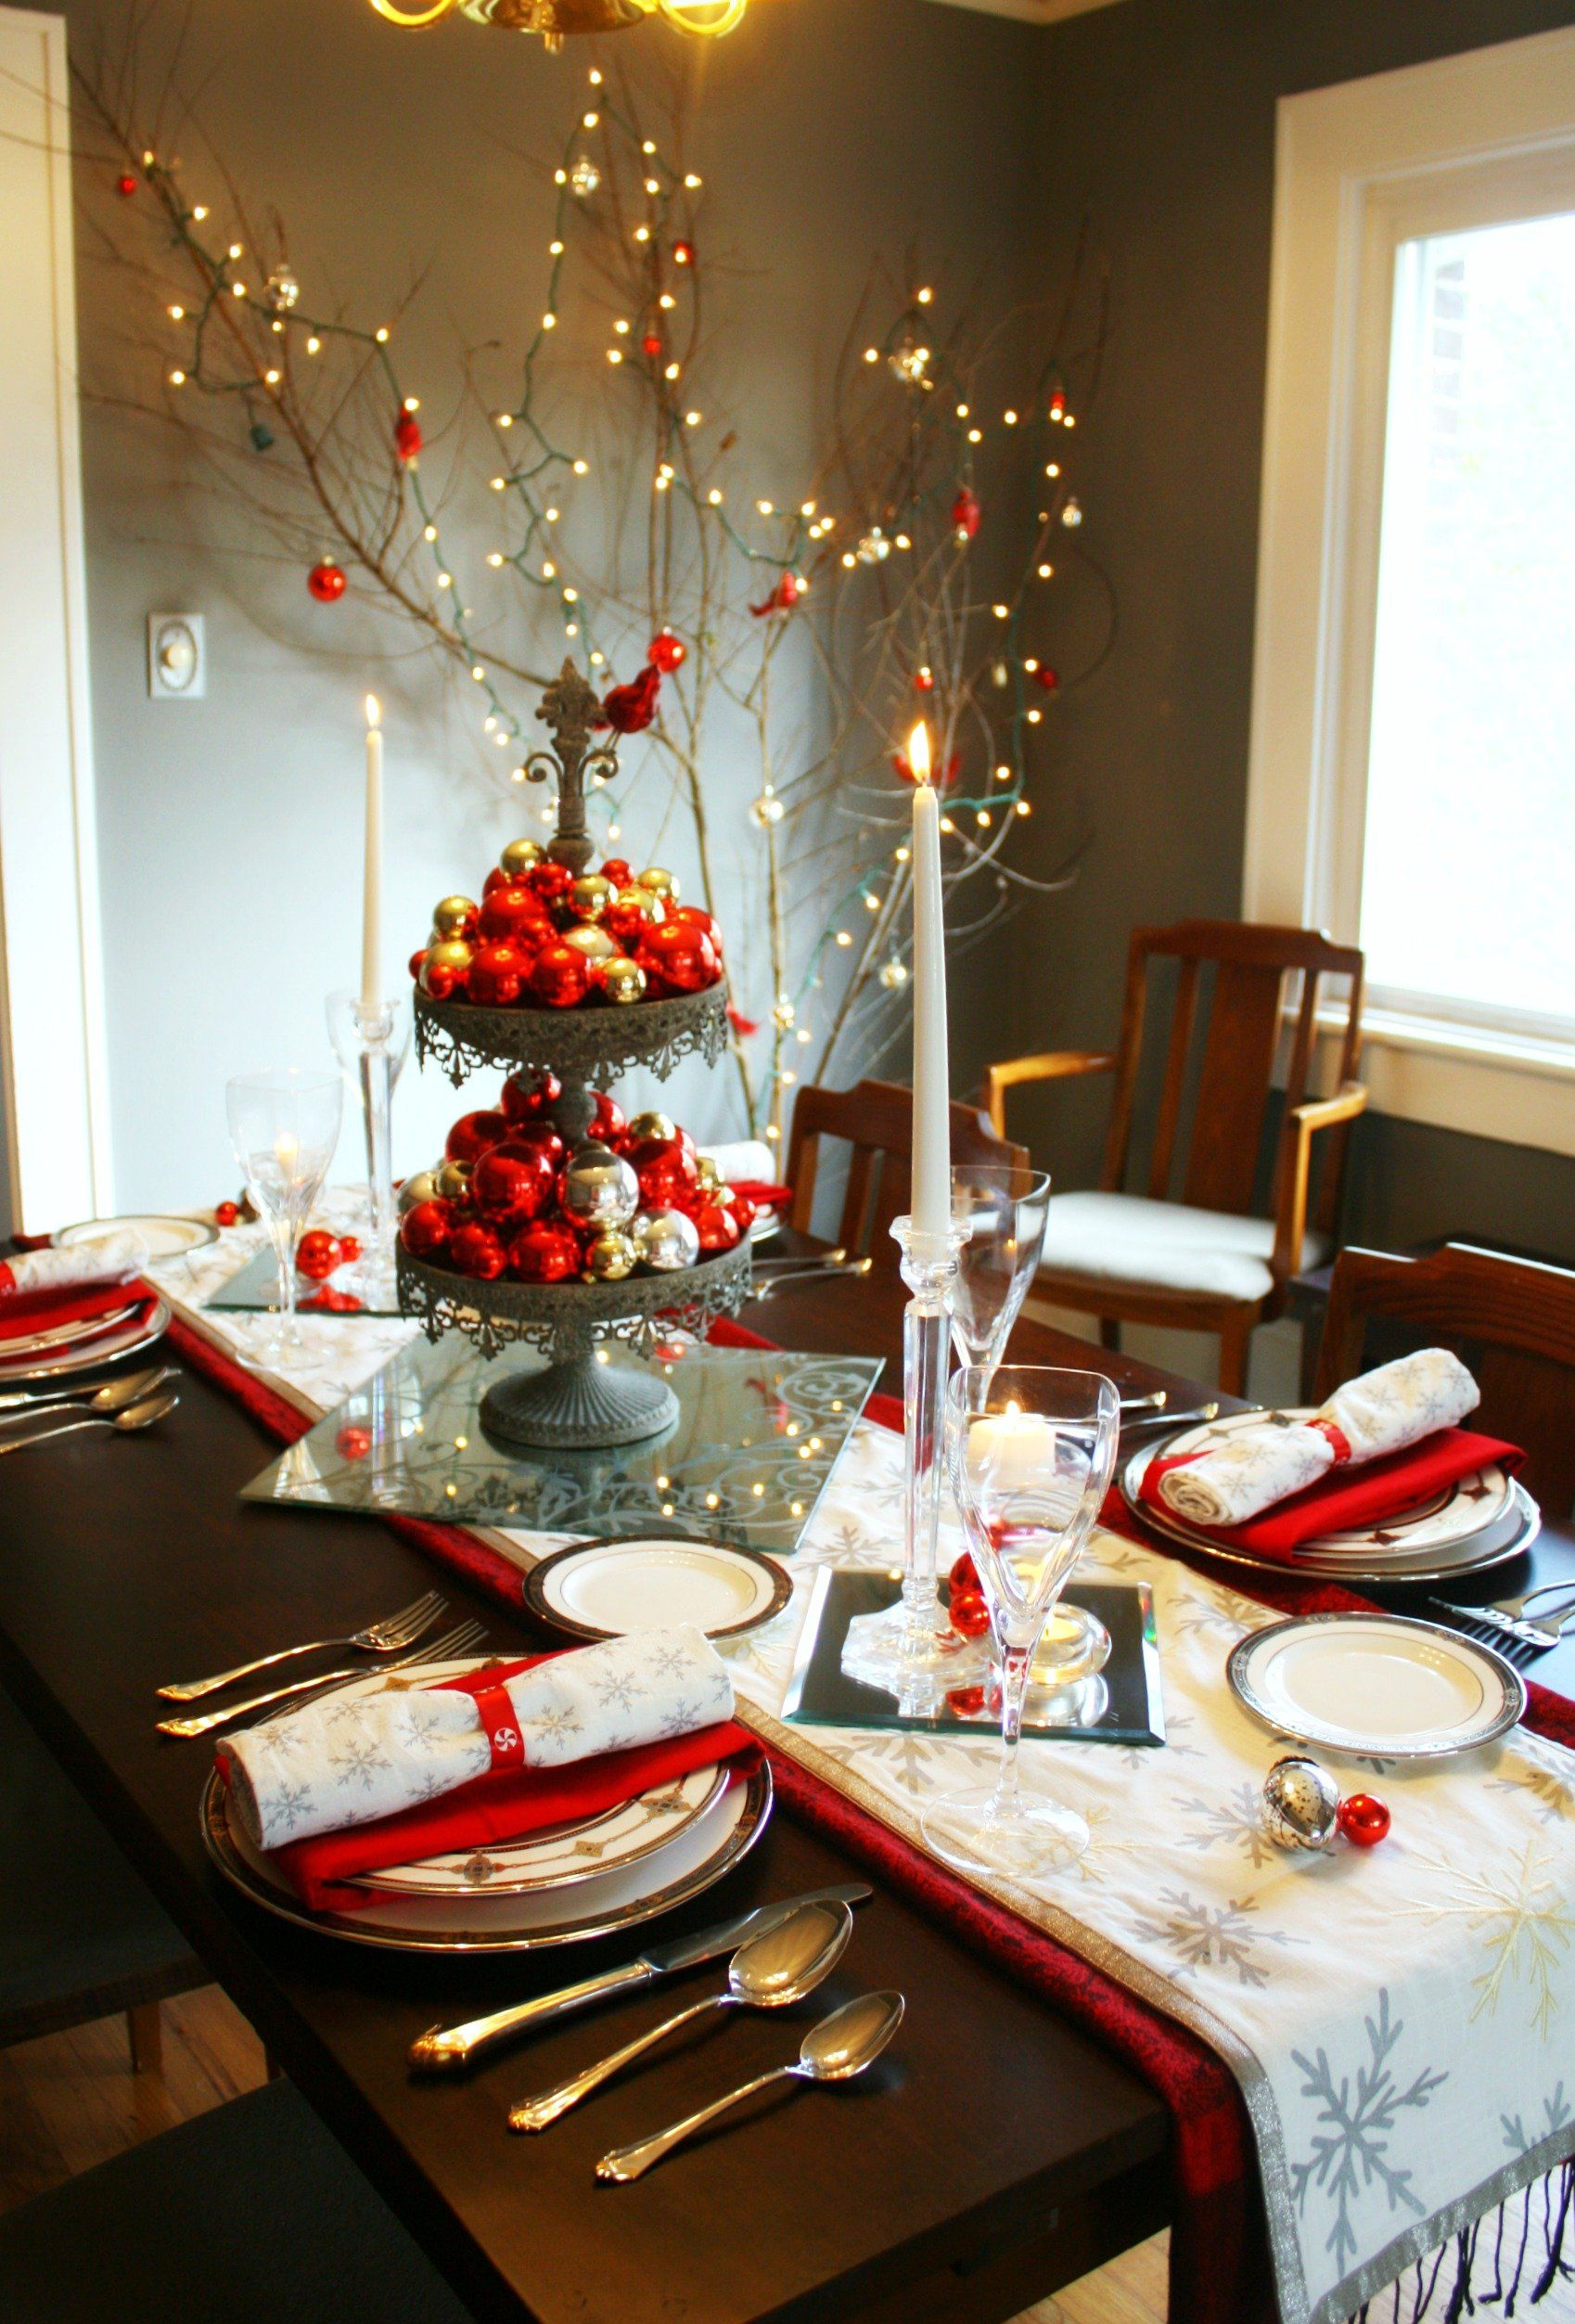 christmas decorations simple ideas of elegant christmas table decorations with gray color metal display pallete and red gold silver colors ball ornaments - Red And Silver Christmas Table Decorations